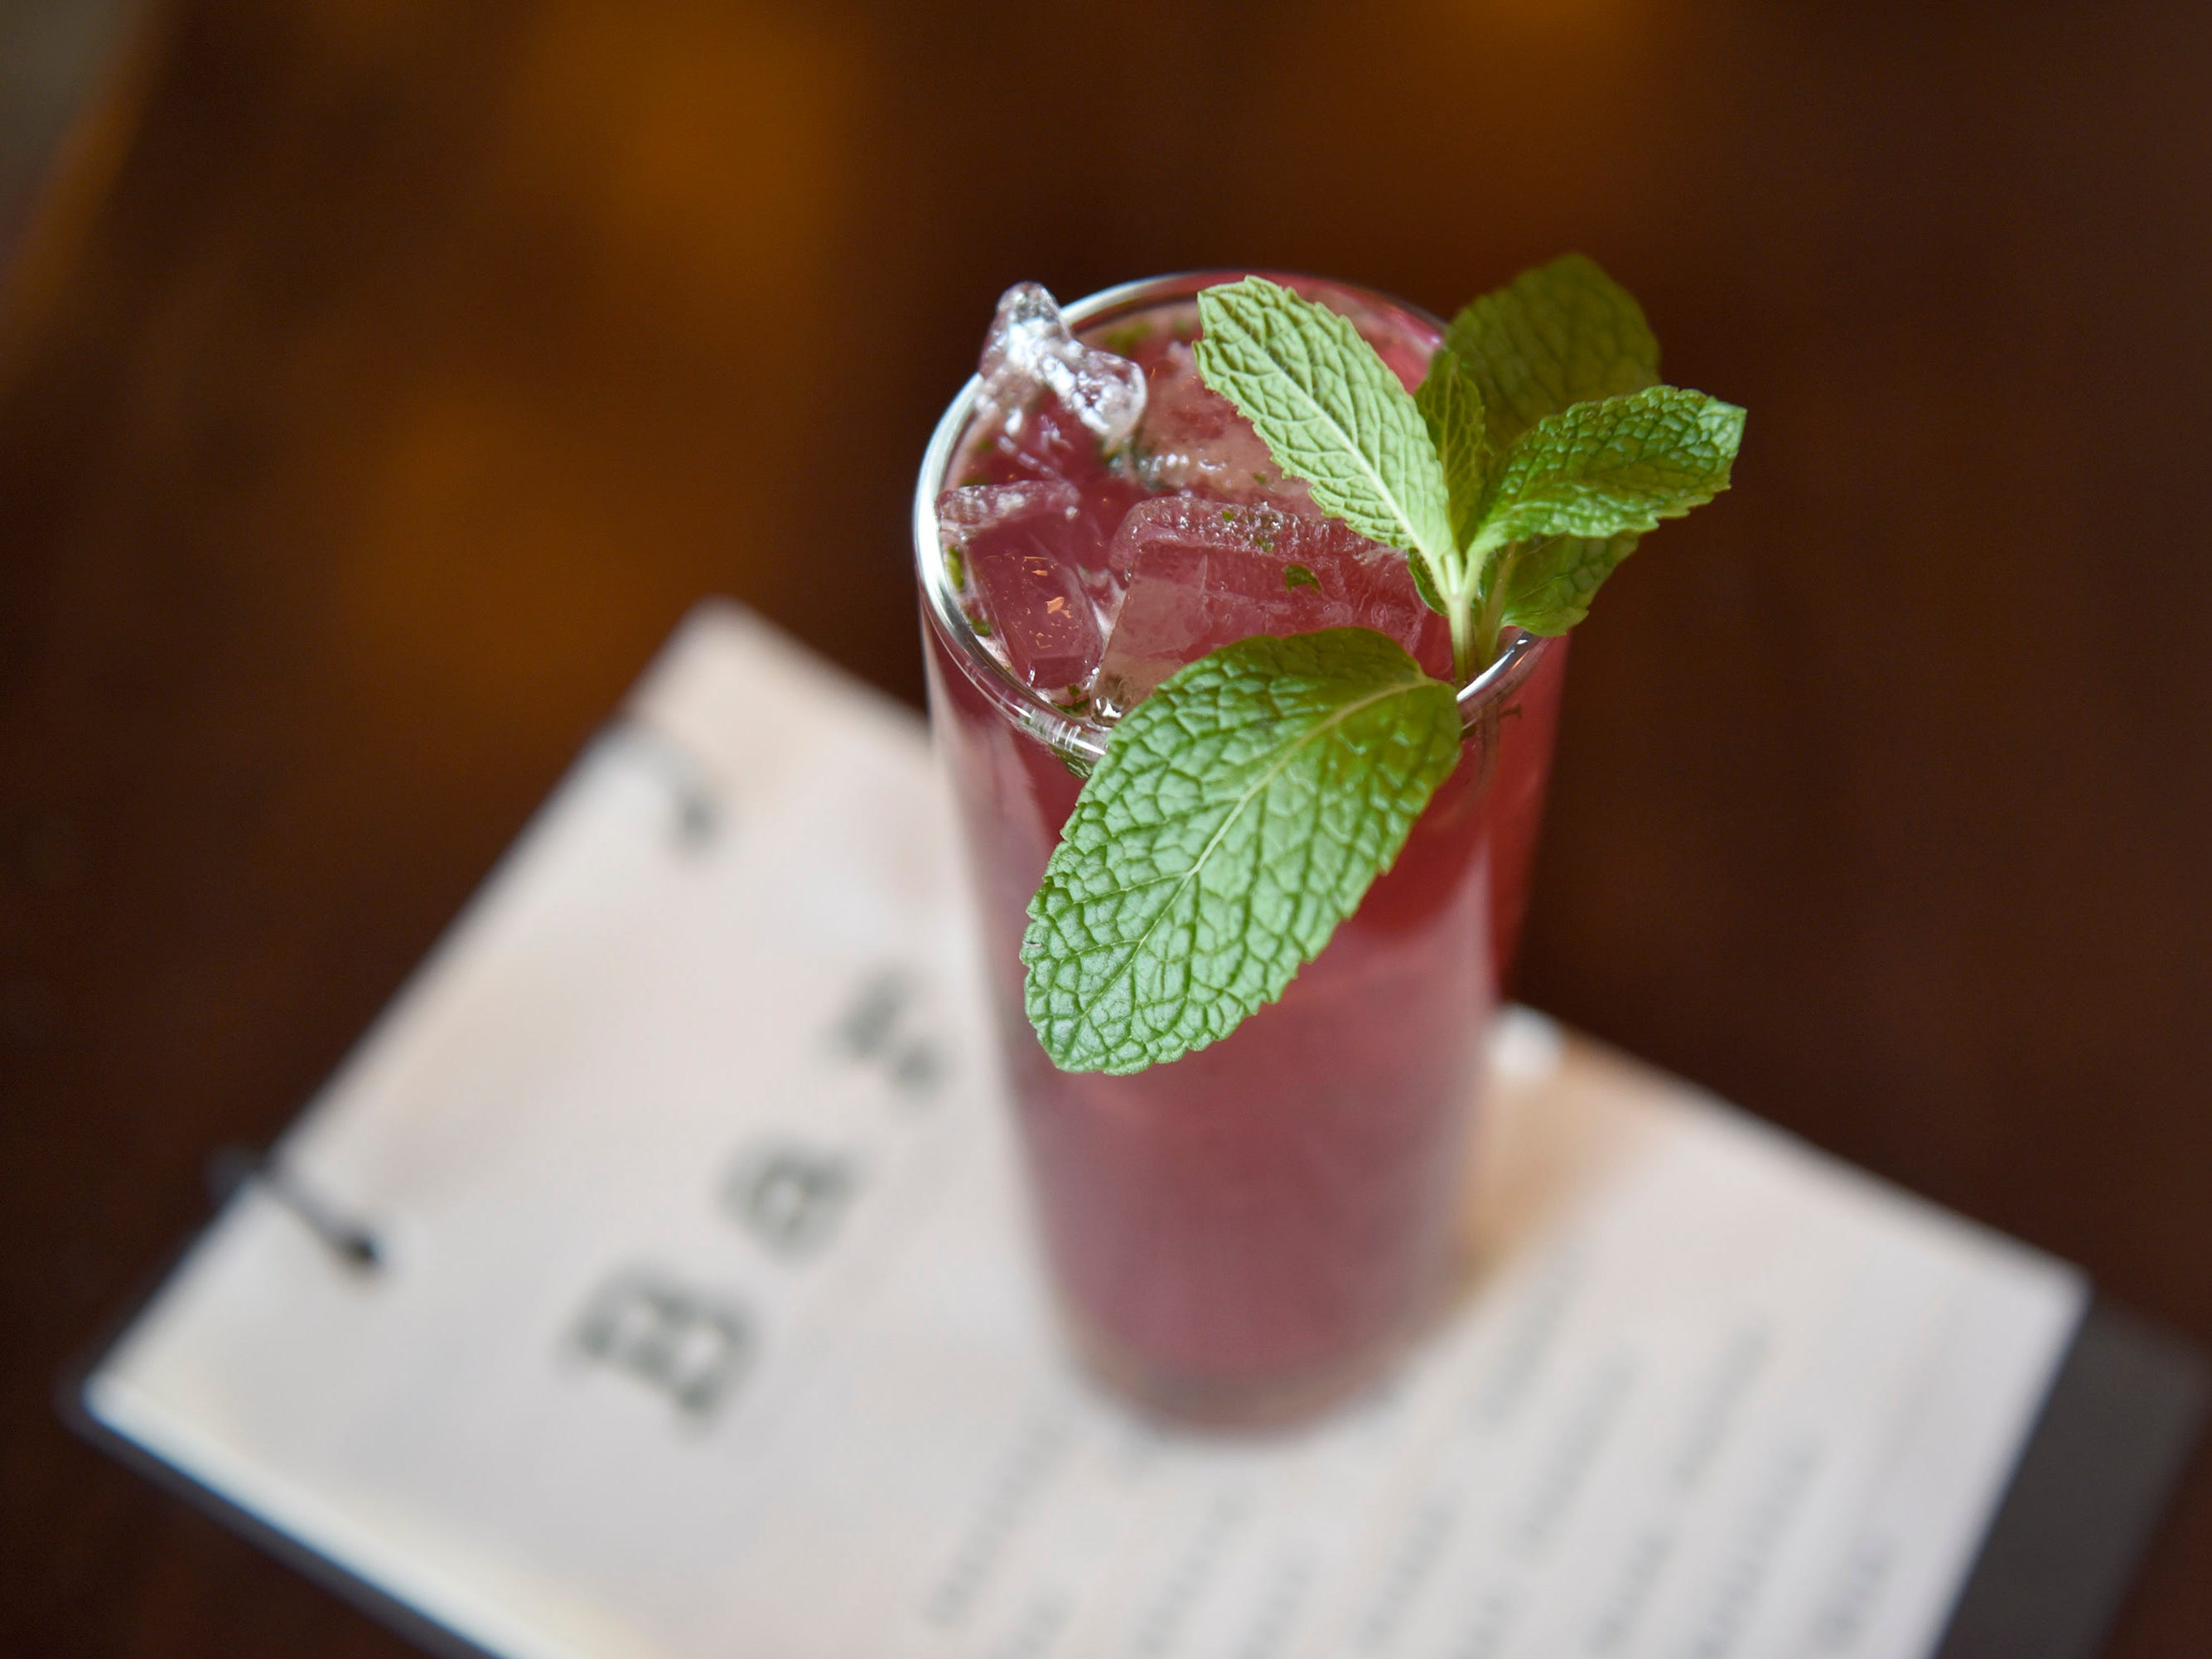 The Blackberry Cooler mocktail at Chive Kitchen in Farmington.